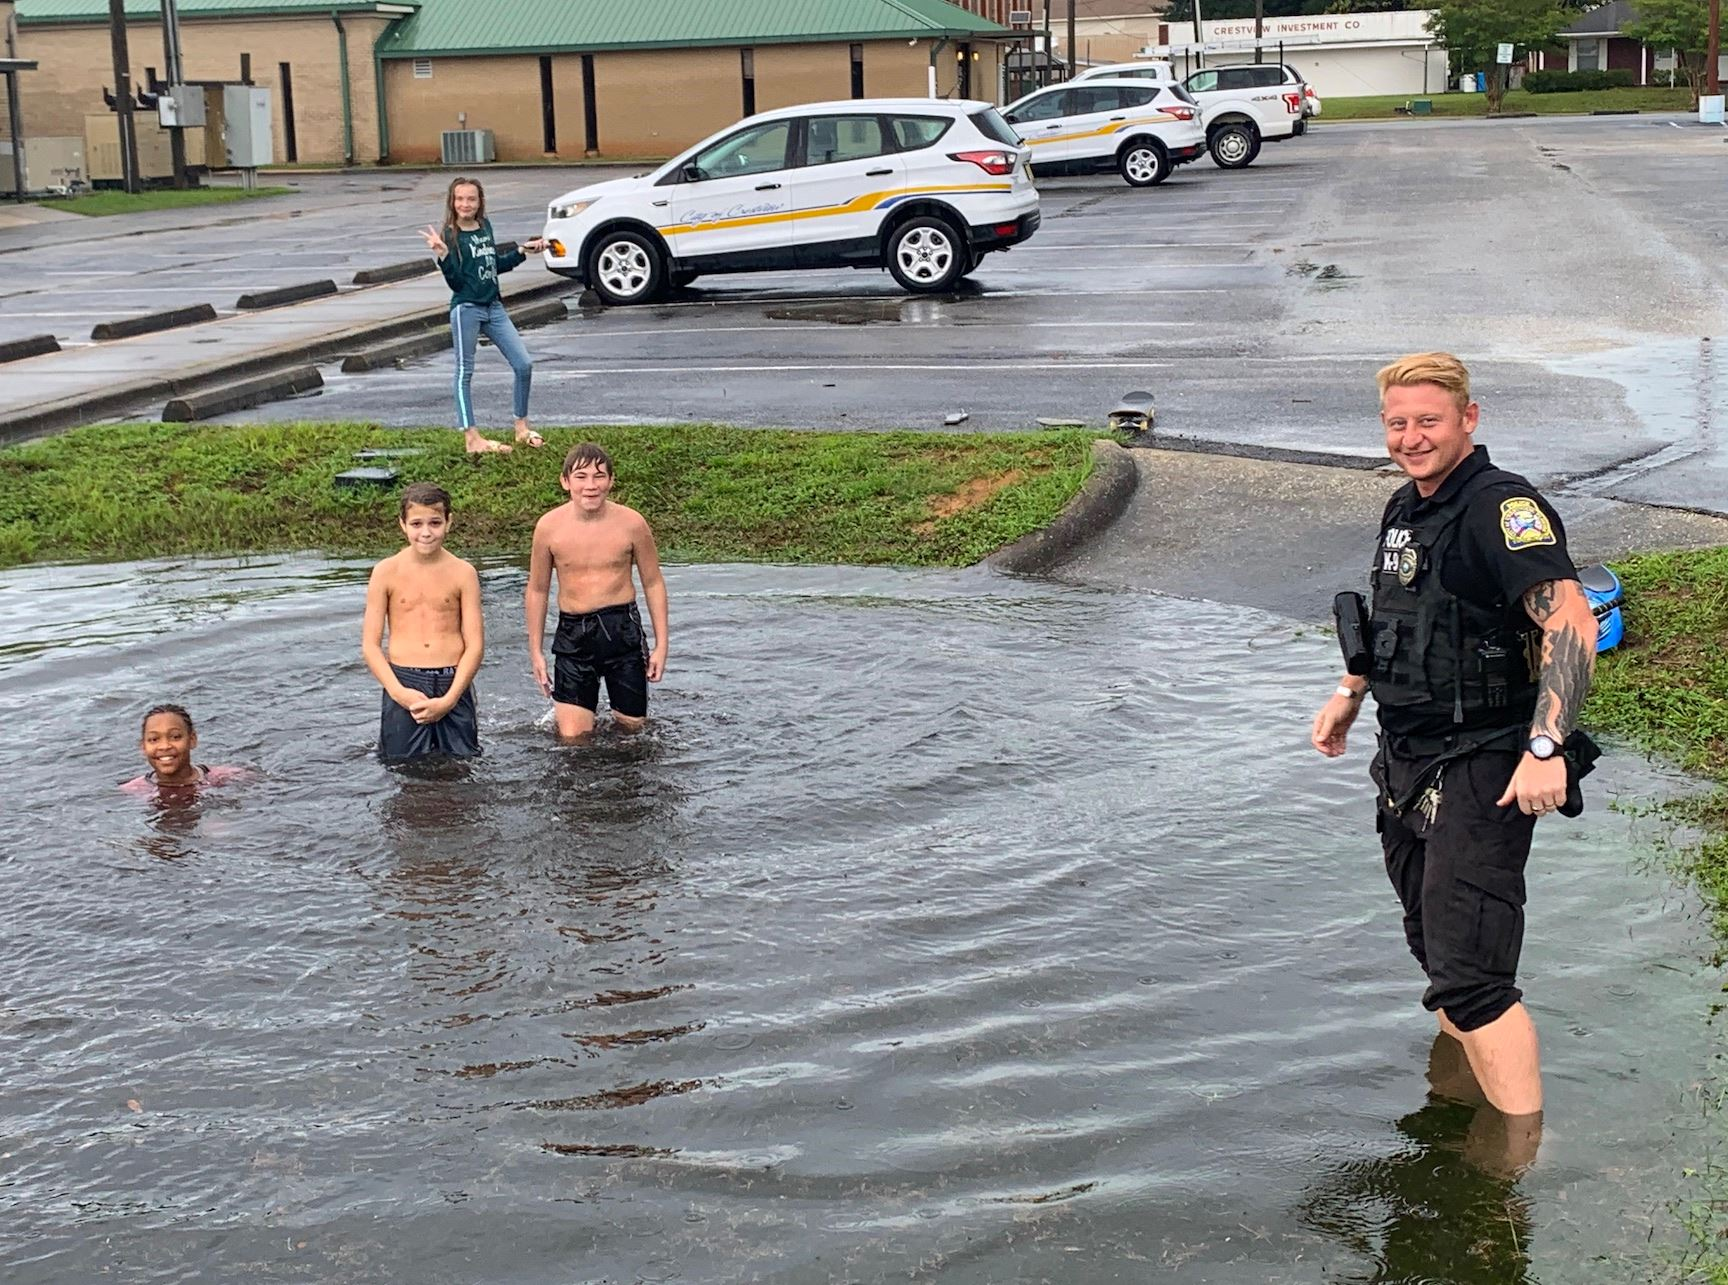 Crestview Police K9 Officer Nate Marlar joins some kids frolicking in a City Hall retention pond.